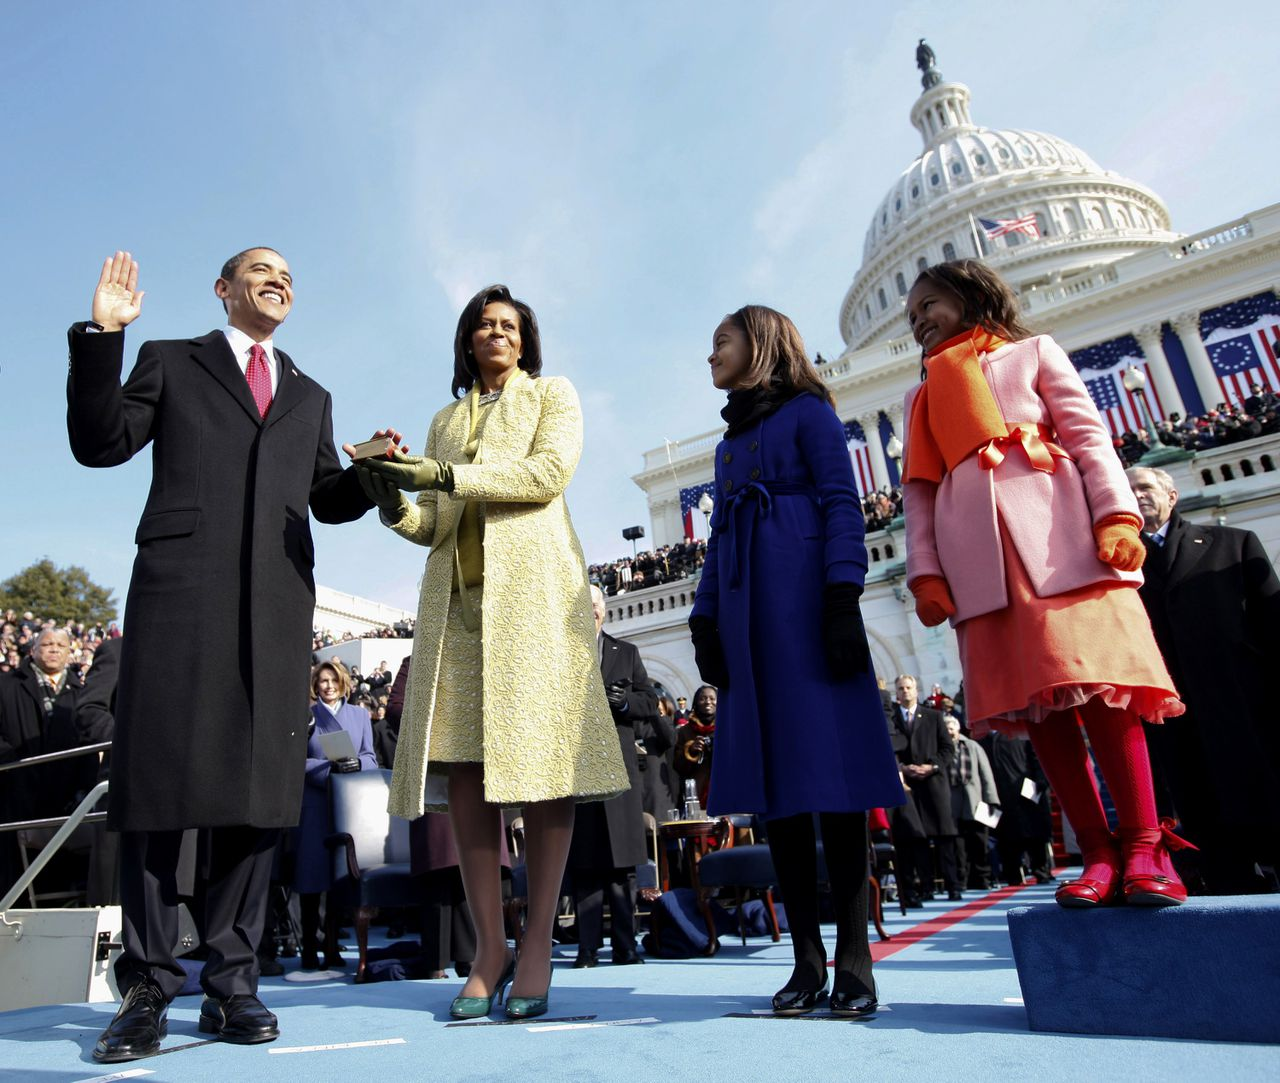 Barack Obama, left, takes the oath of office from Chief Justice John Roberts, not seen, as his wife Michelle, holds the Lincoln Bible and daughters Sasha, right and Malia, watch at the U.S. Capitol in Washington, Tuesday, Jan. 20, 2009. (AP Photo/Chuck Kennedy, Pool)